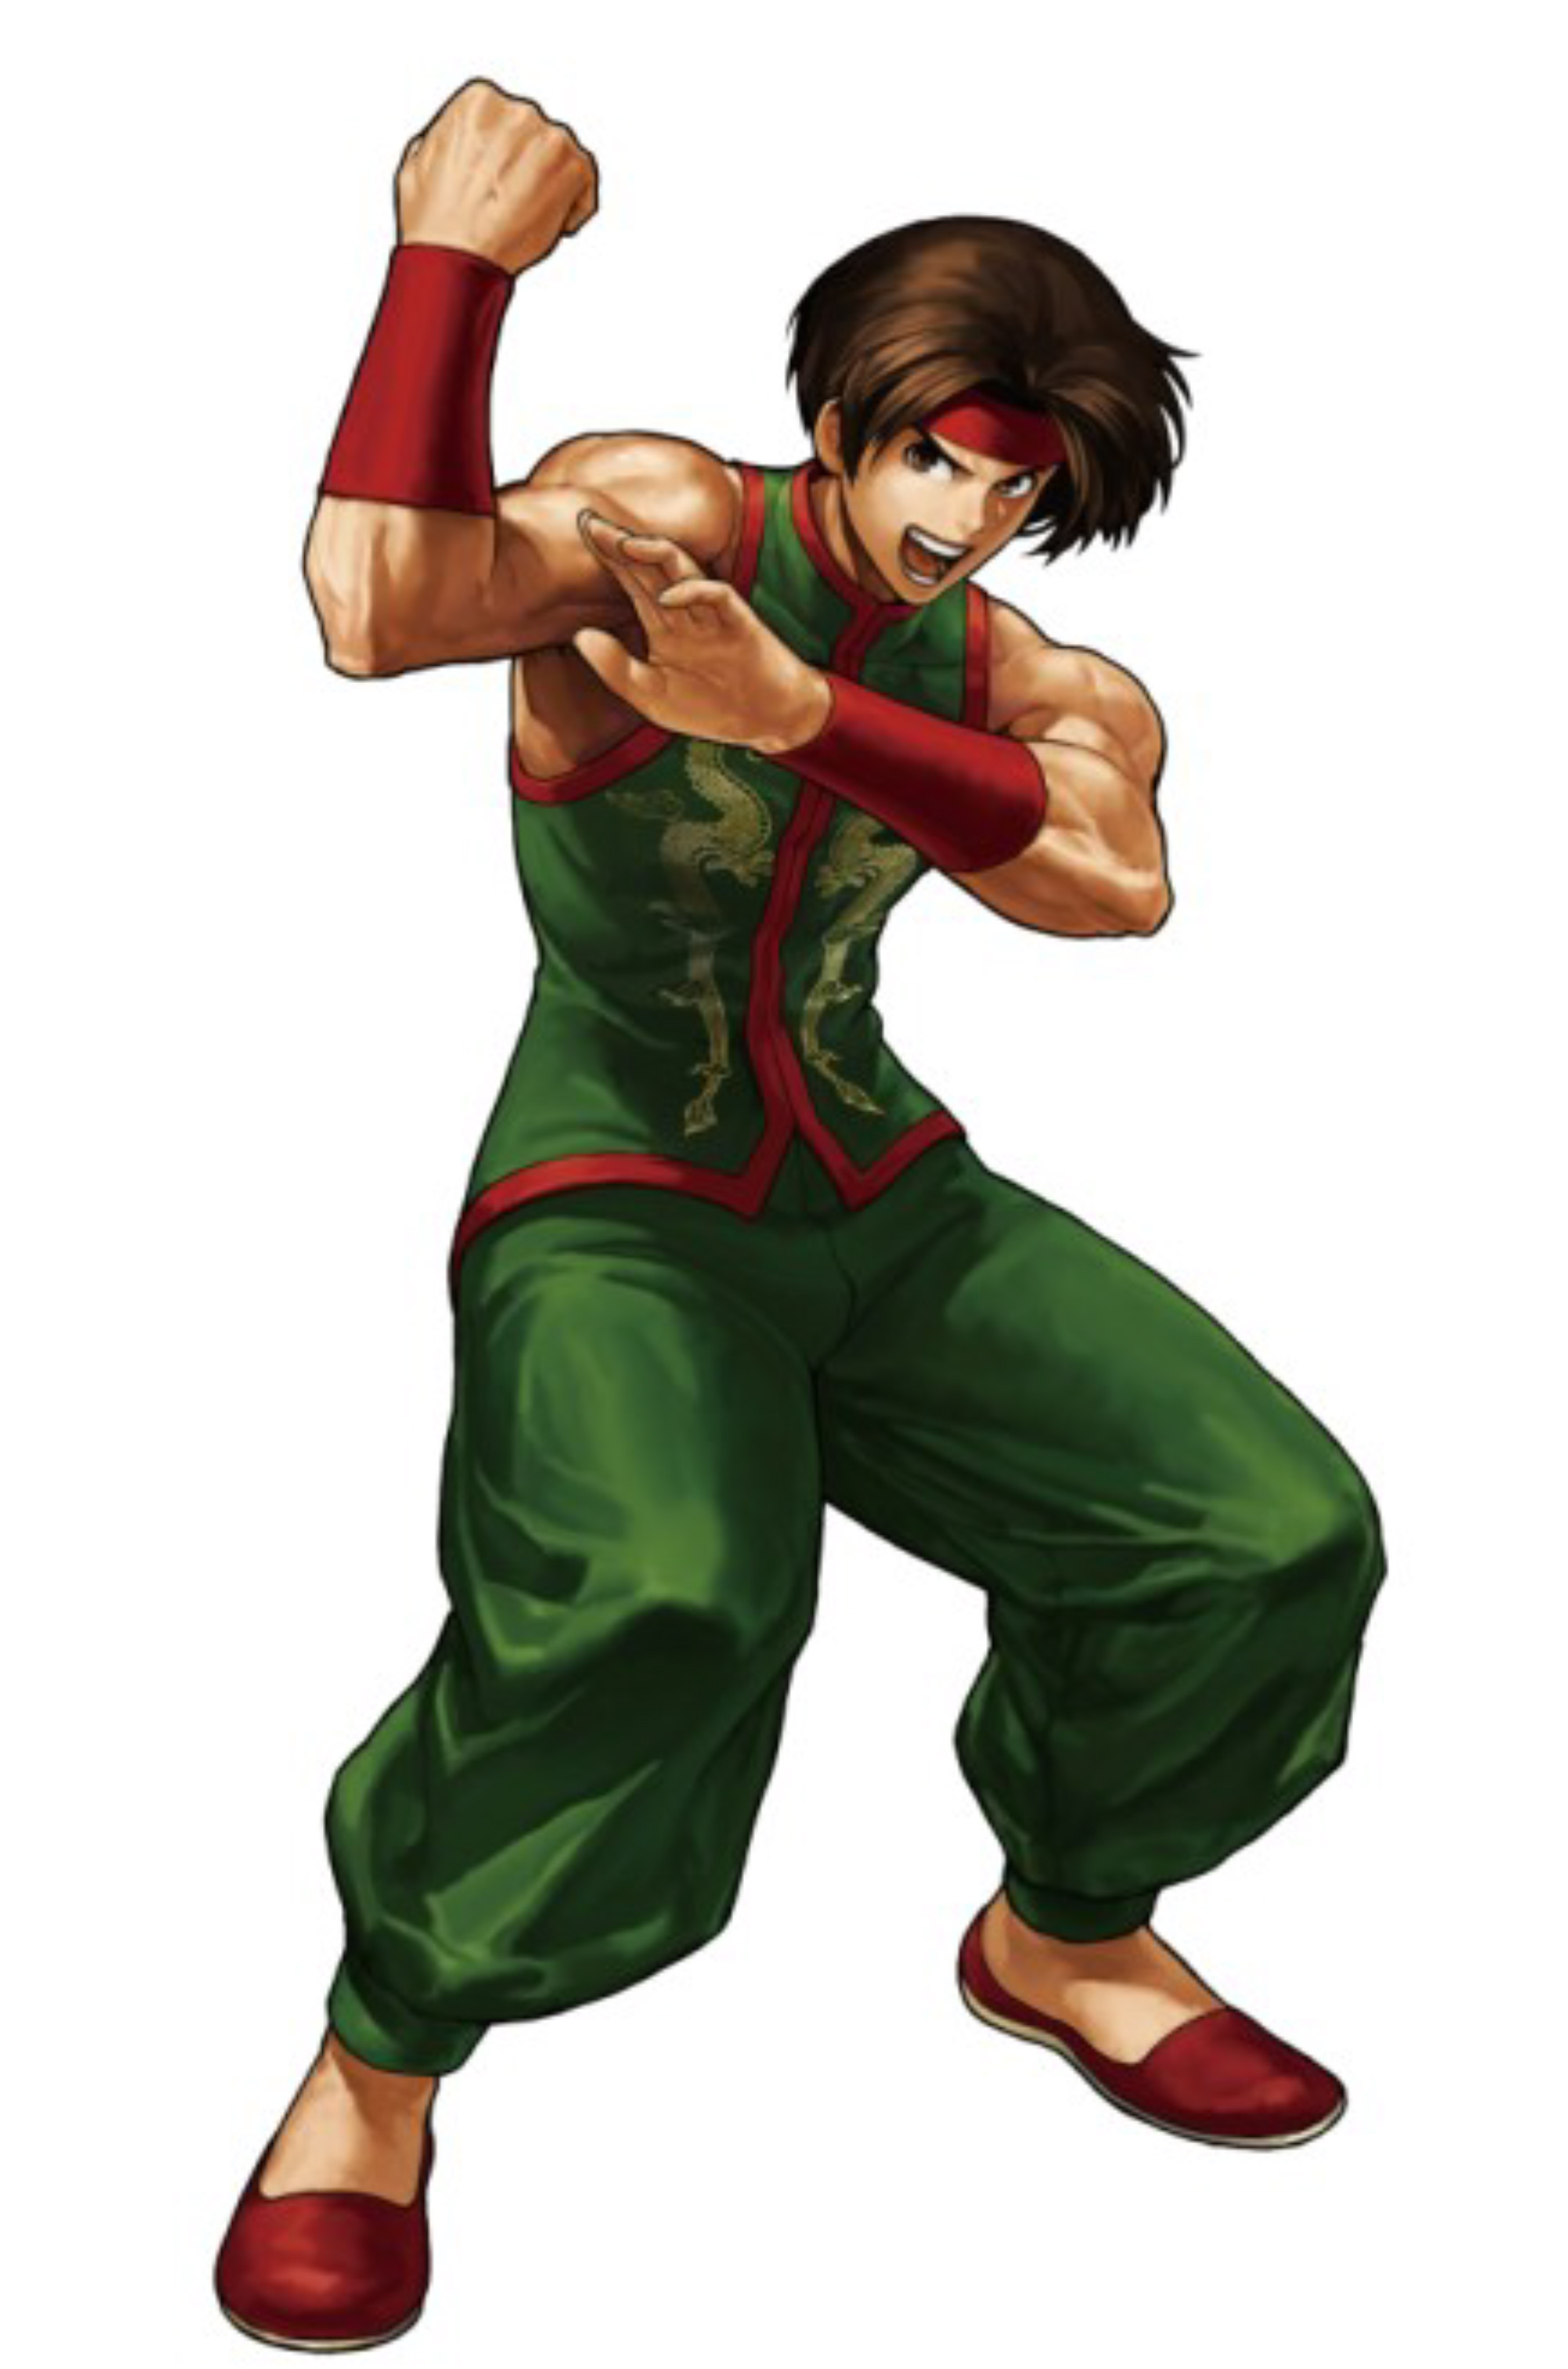 King of fighters xiii sie kensou character artwork - King of fighters characters pictures ...